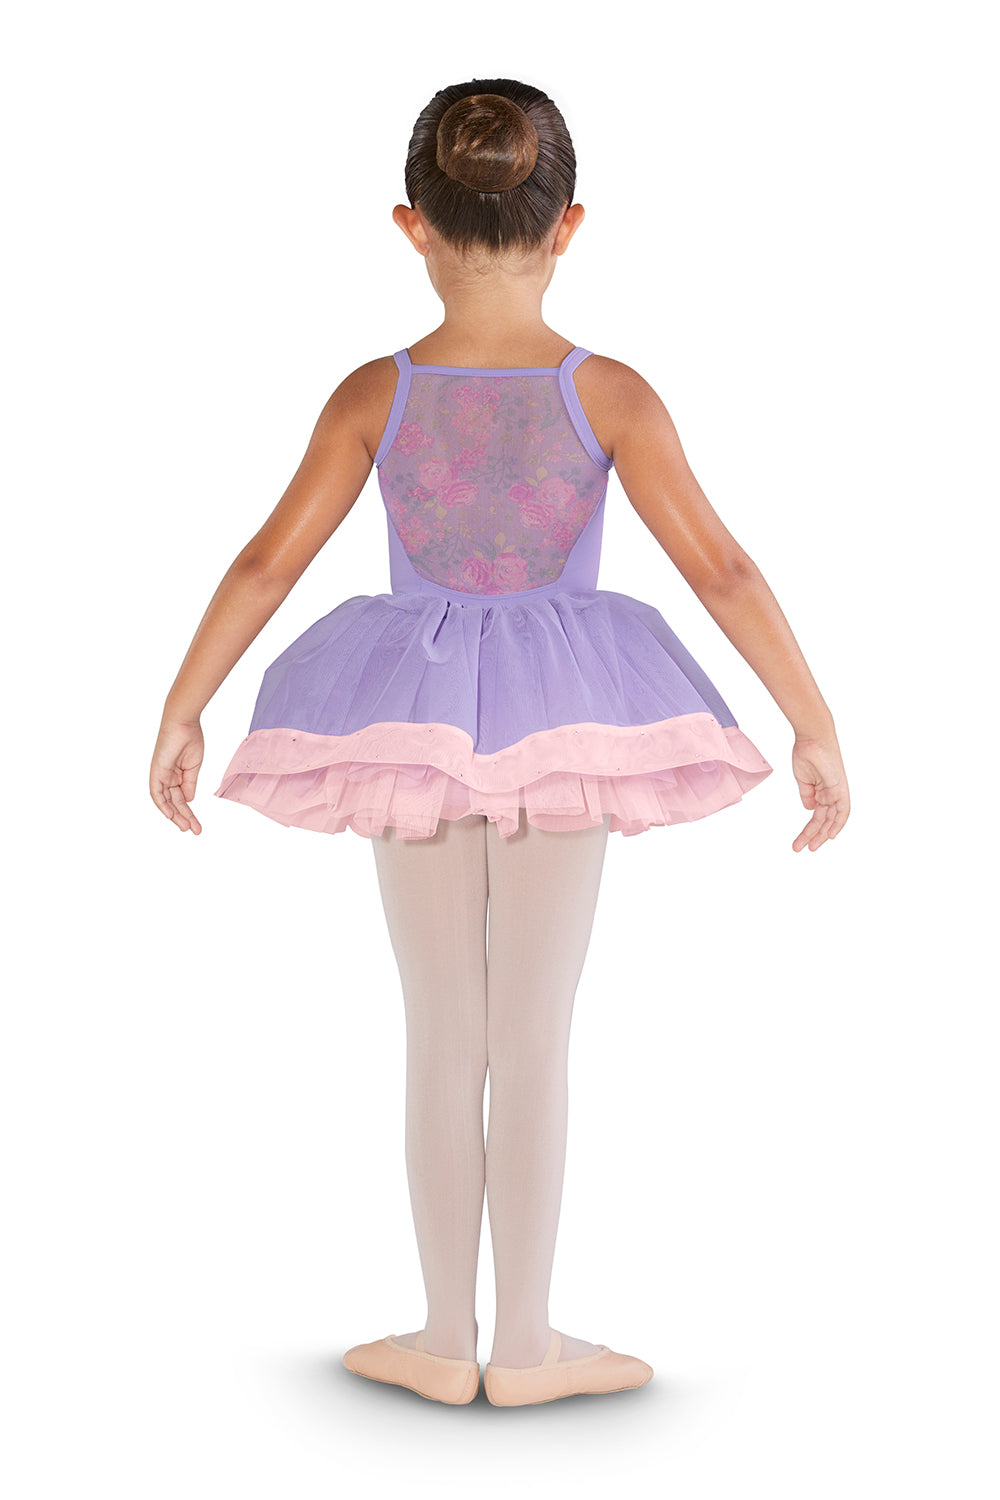 Girls Frances Two Tone Tutu Skirt